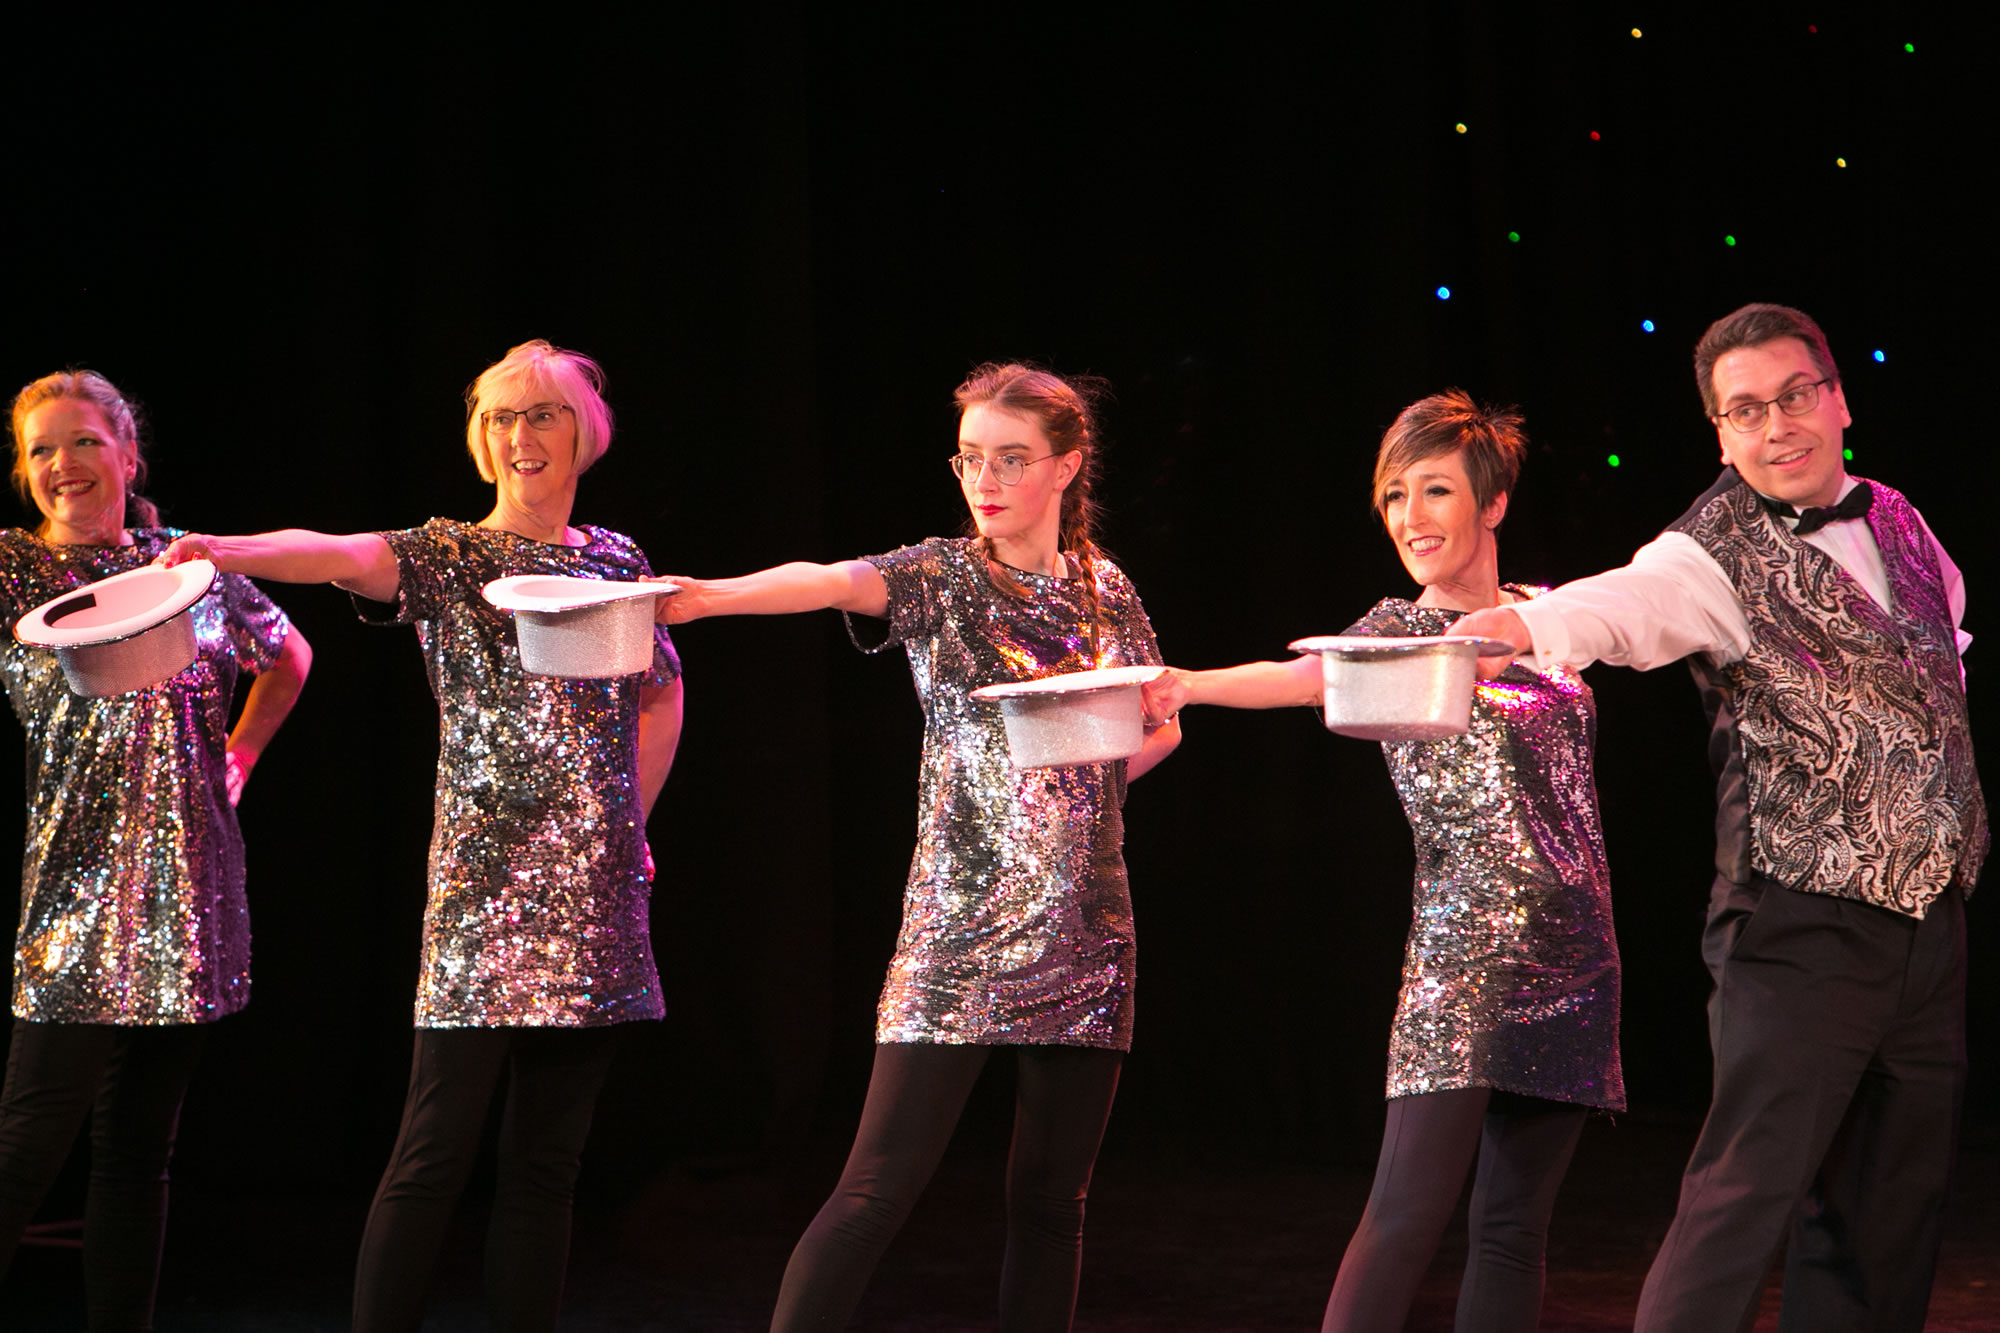 Hitchin_School_of_Dance_Show_2019-SM1_2977.jpg